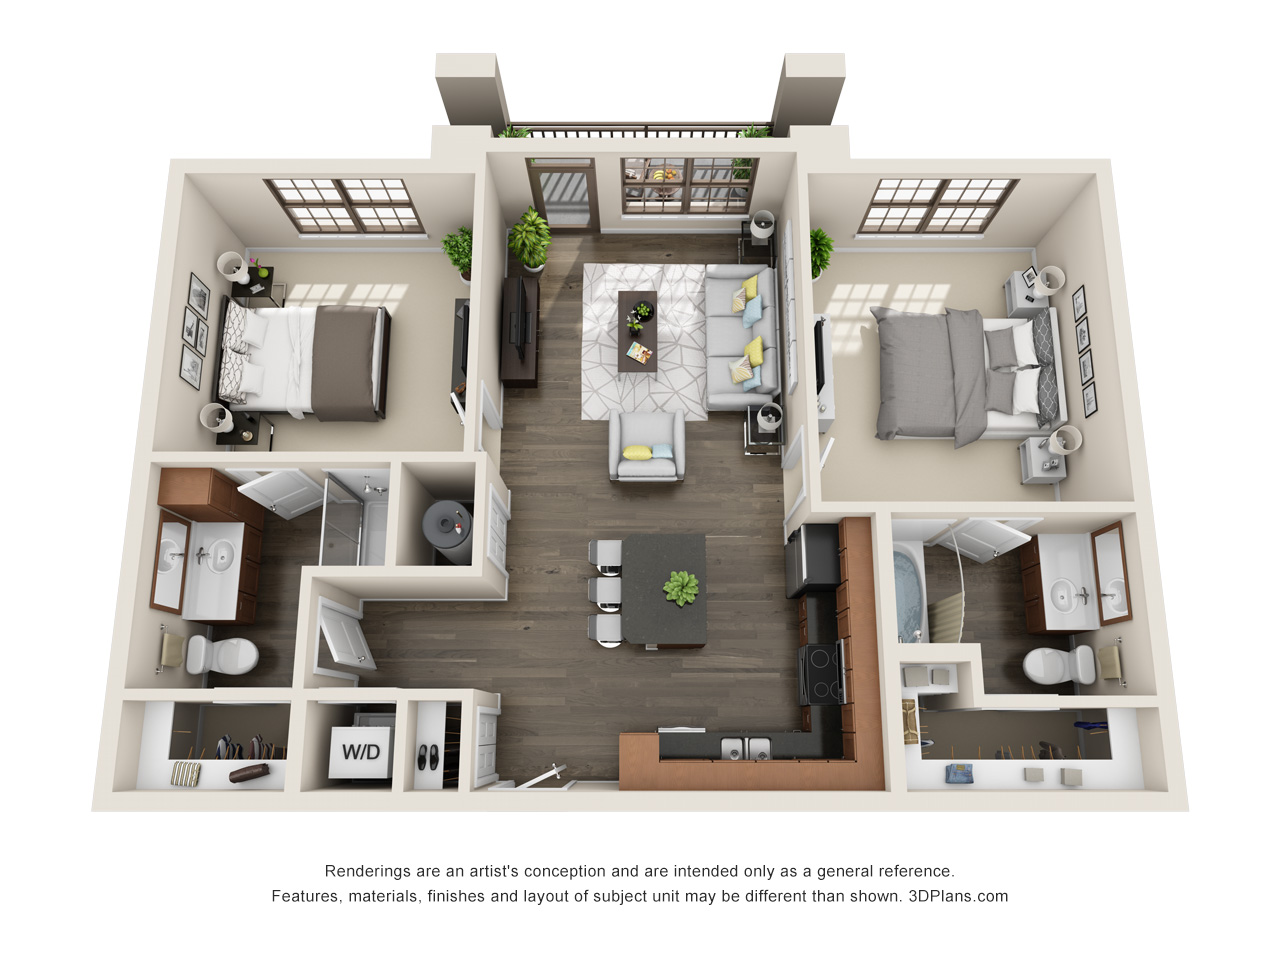 The Lexington Dillworth 2 bedroom/2 bath THE DOWD floorplan